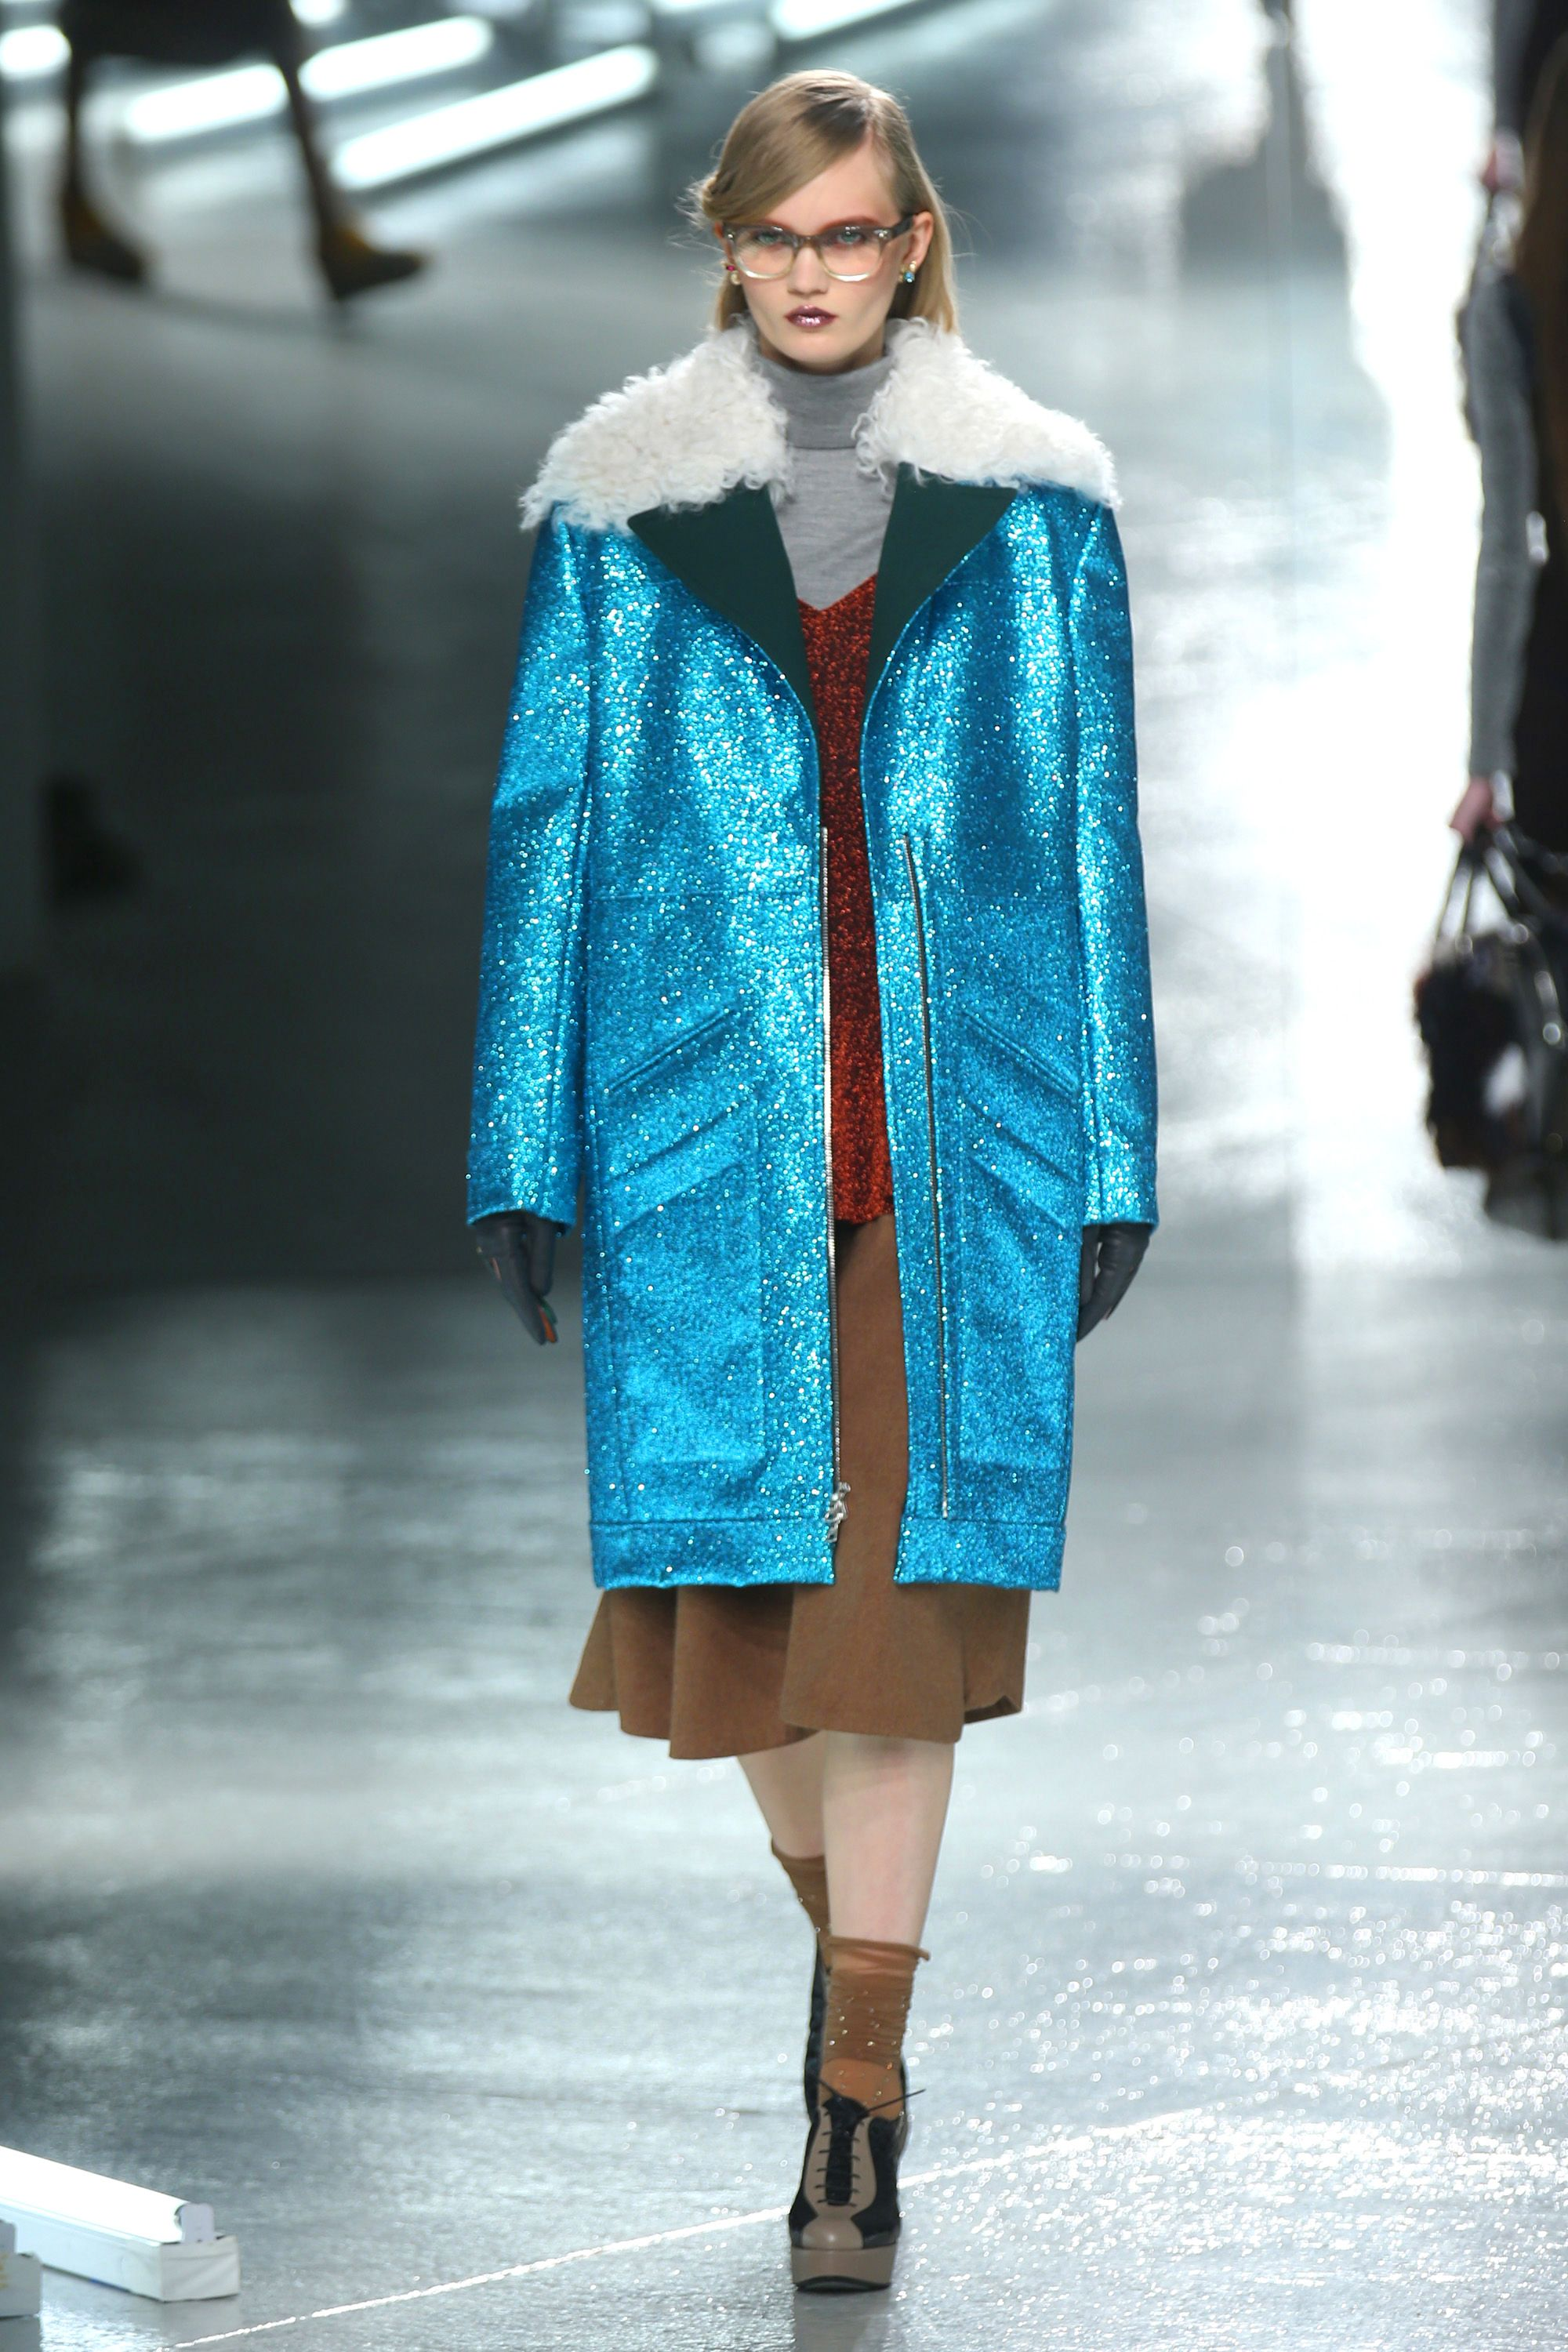 "<p>I have lusted after the <a href=""http://www.vogue.com/fashion-shows/fall-2014-ready-to-wear/rodarte/slideshow/collection#19"" target=""_blank"">Rodarte Fall 2014 glitter coats</a> and the <a href=""http://www.antwerp-fashion.be/show2014/raffaela-graspointner.html"" target=""_blank"">paillettes-covered coat</a> by Raffaela Graspointner, but there are also many vintage sparkly numbers out there. All I know is that we should all be like the lovely Aretha Franklin <a href=""https://www.youtube.com/watch?v=y0URYw27qd0"" target=""_blank"">and shine like a diamond ring</a>.</p>"